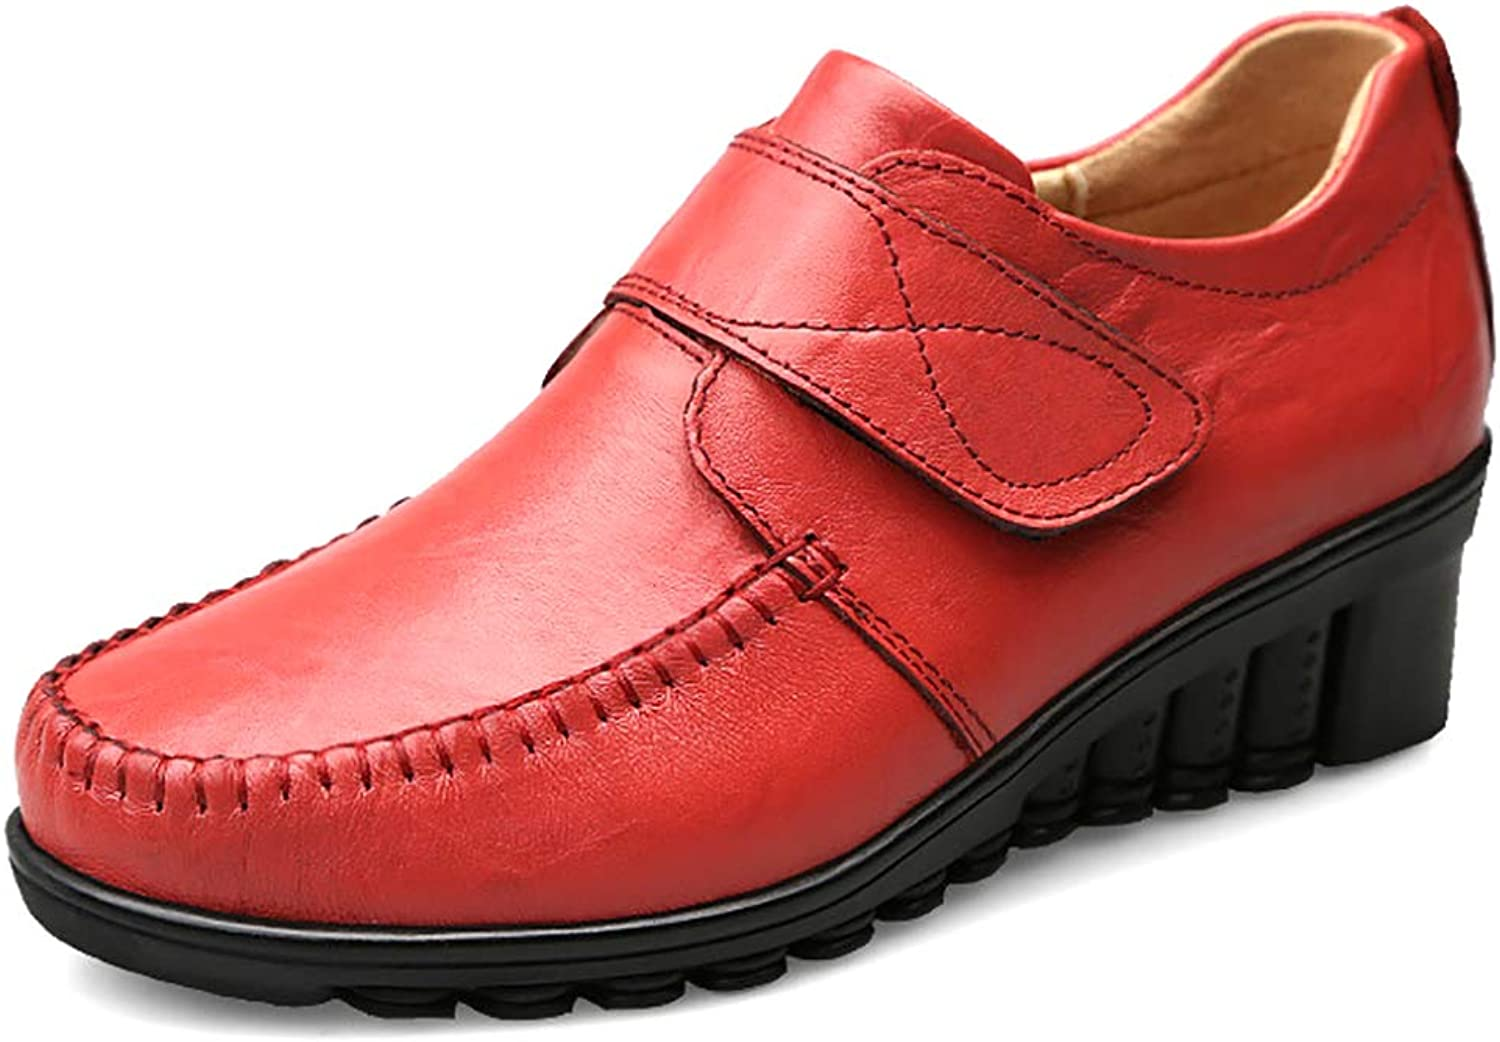 Odema Women's Comfort Genuine Leather Oxford Buckled Lace-up Loafers Wedges shoes